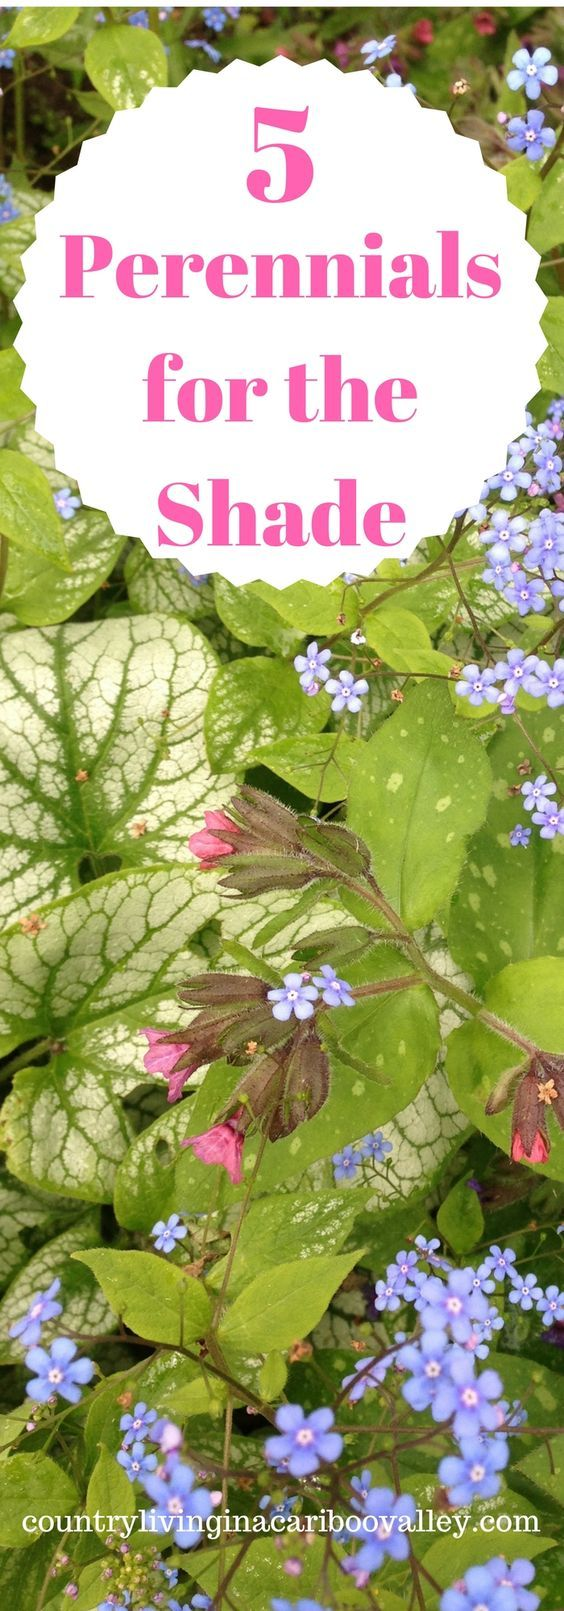 Create A Perennial Flower Bed For The Shade Flowers 400 x 300